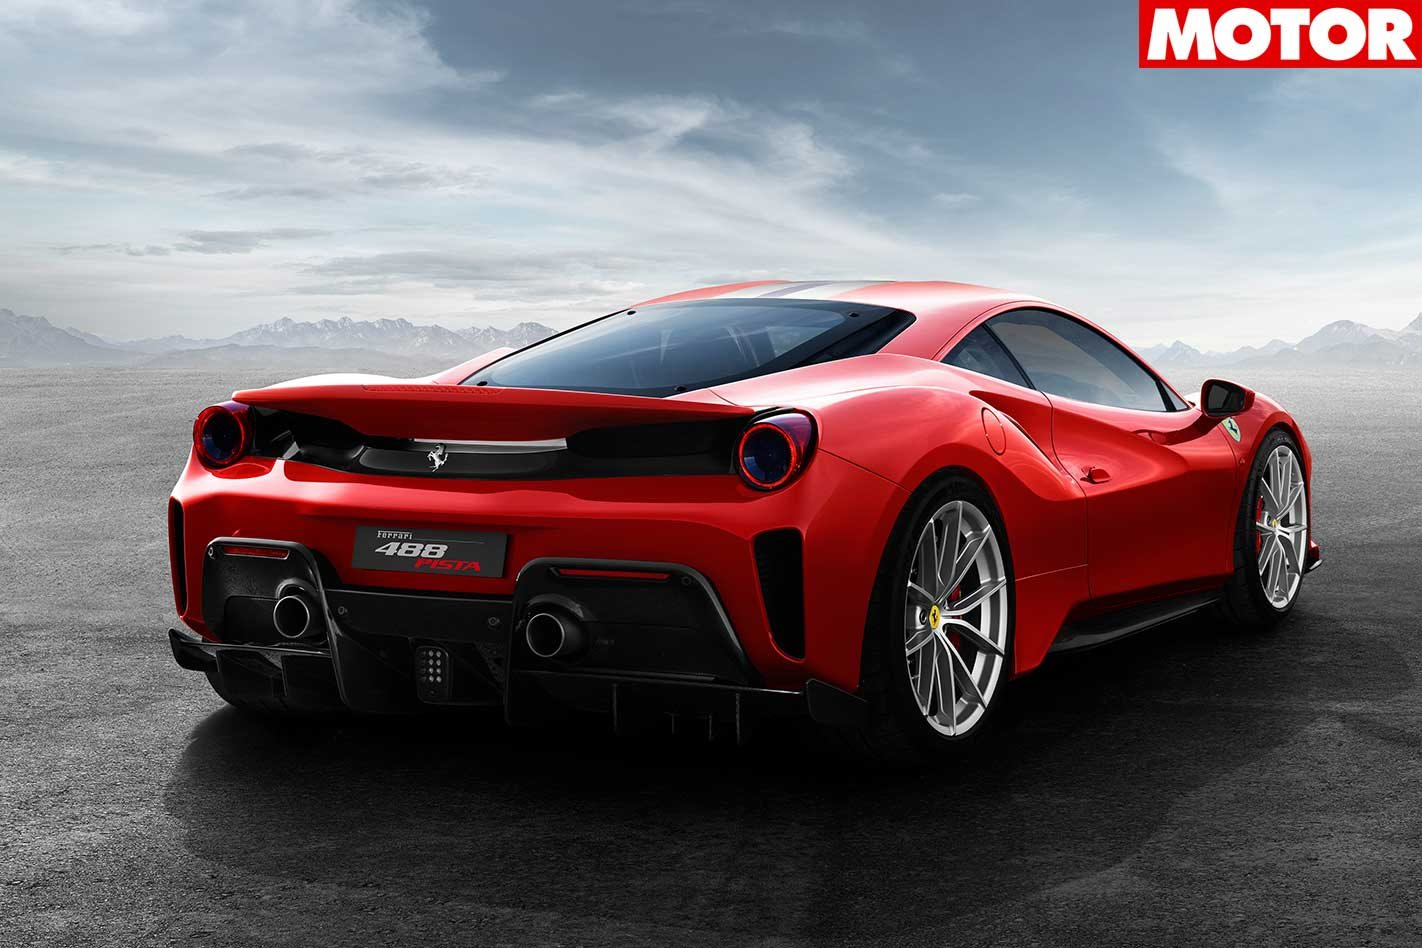 Ferrari 488 Pista: Brilliant Track-Derived Combination of Exhilaration and Performance